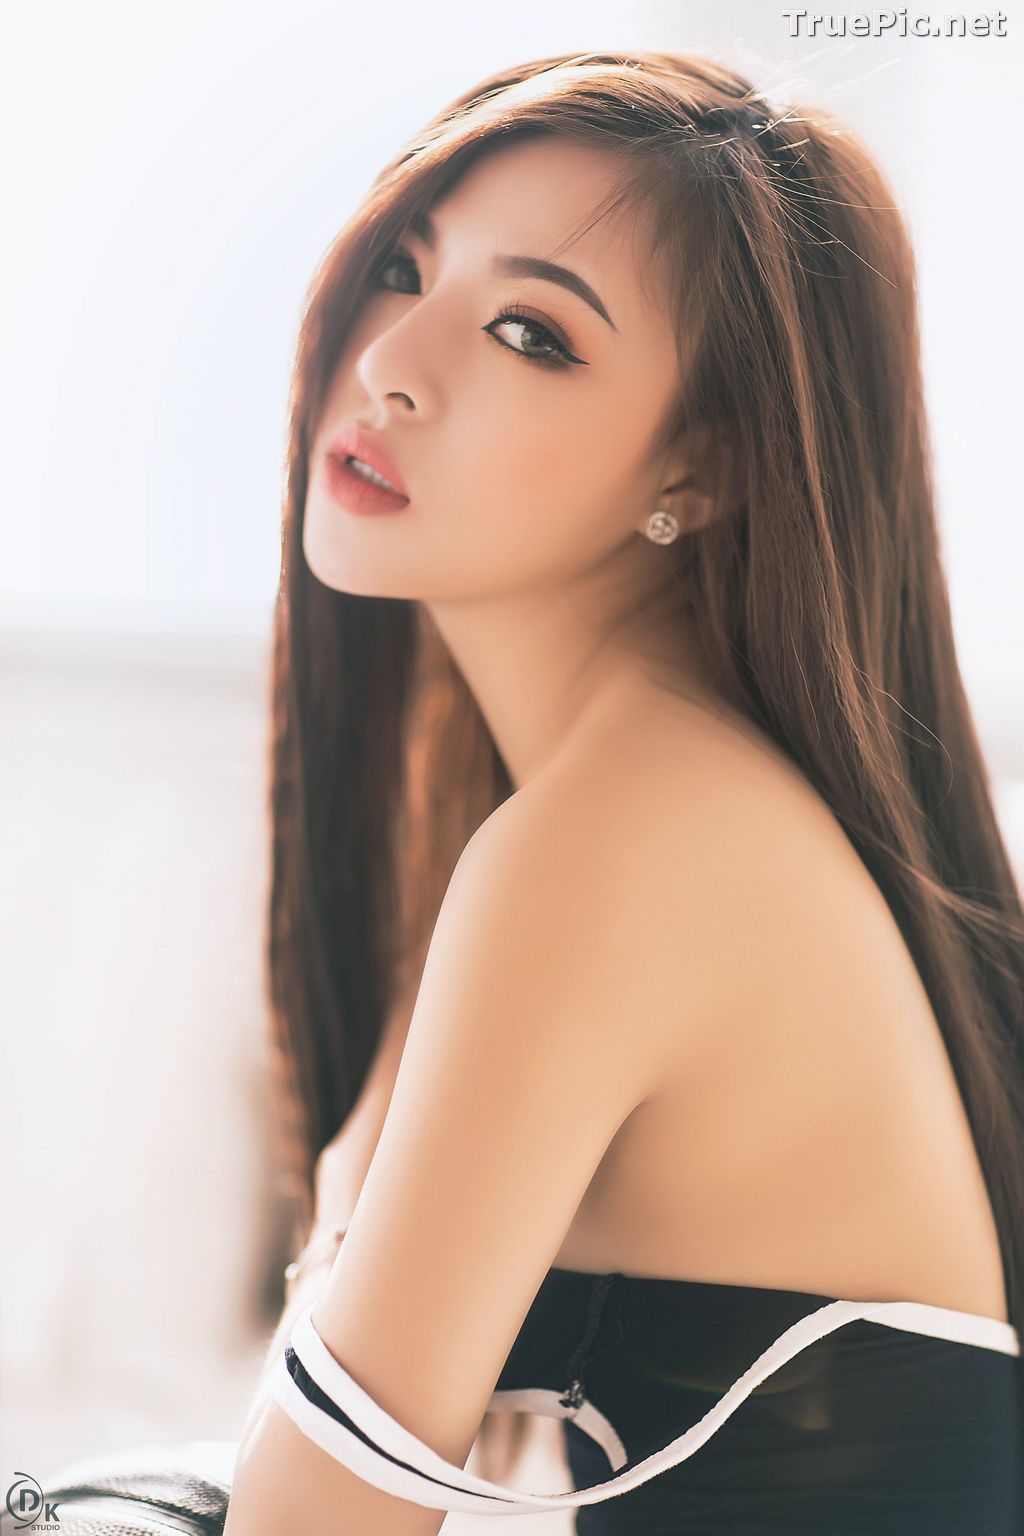 Image The Beauty of Vietnamese Girls – Photo Collection 2020 (#14) - TruePic.net - Picture-3